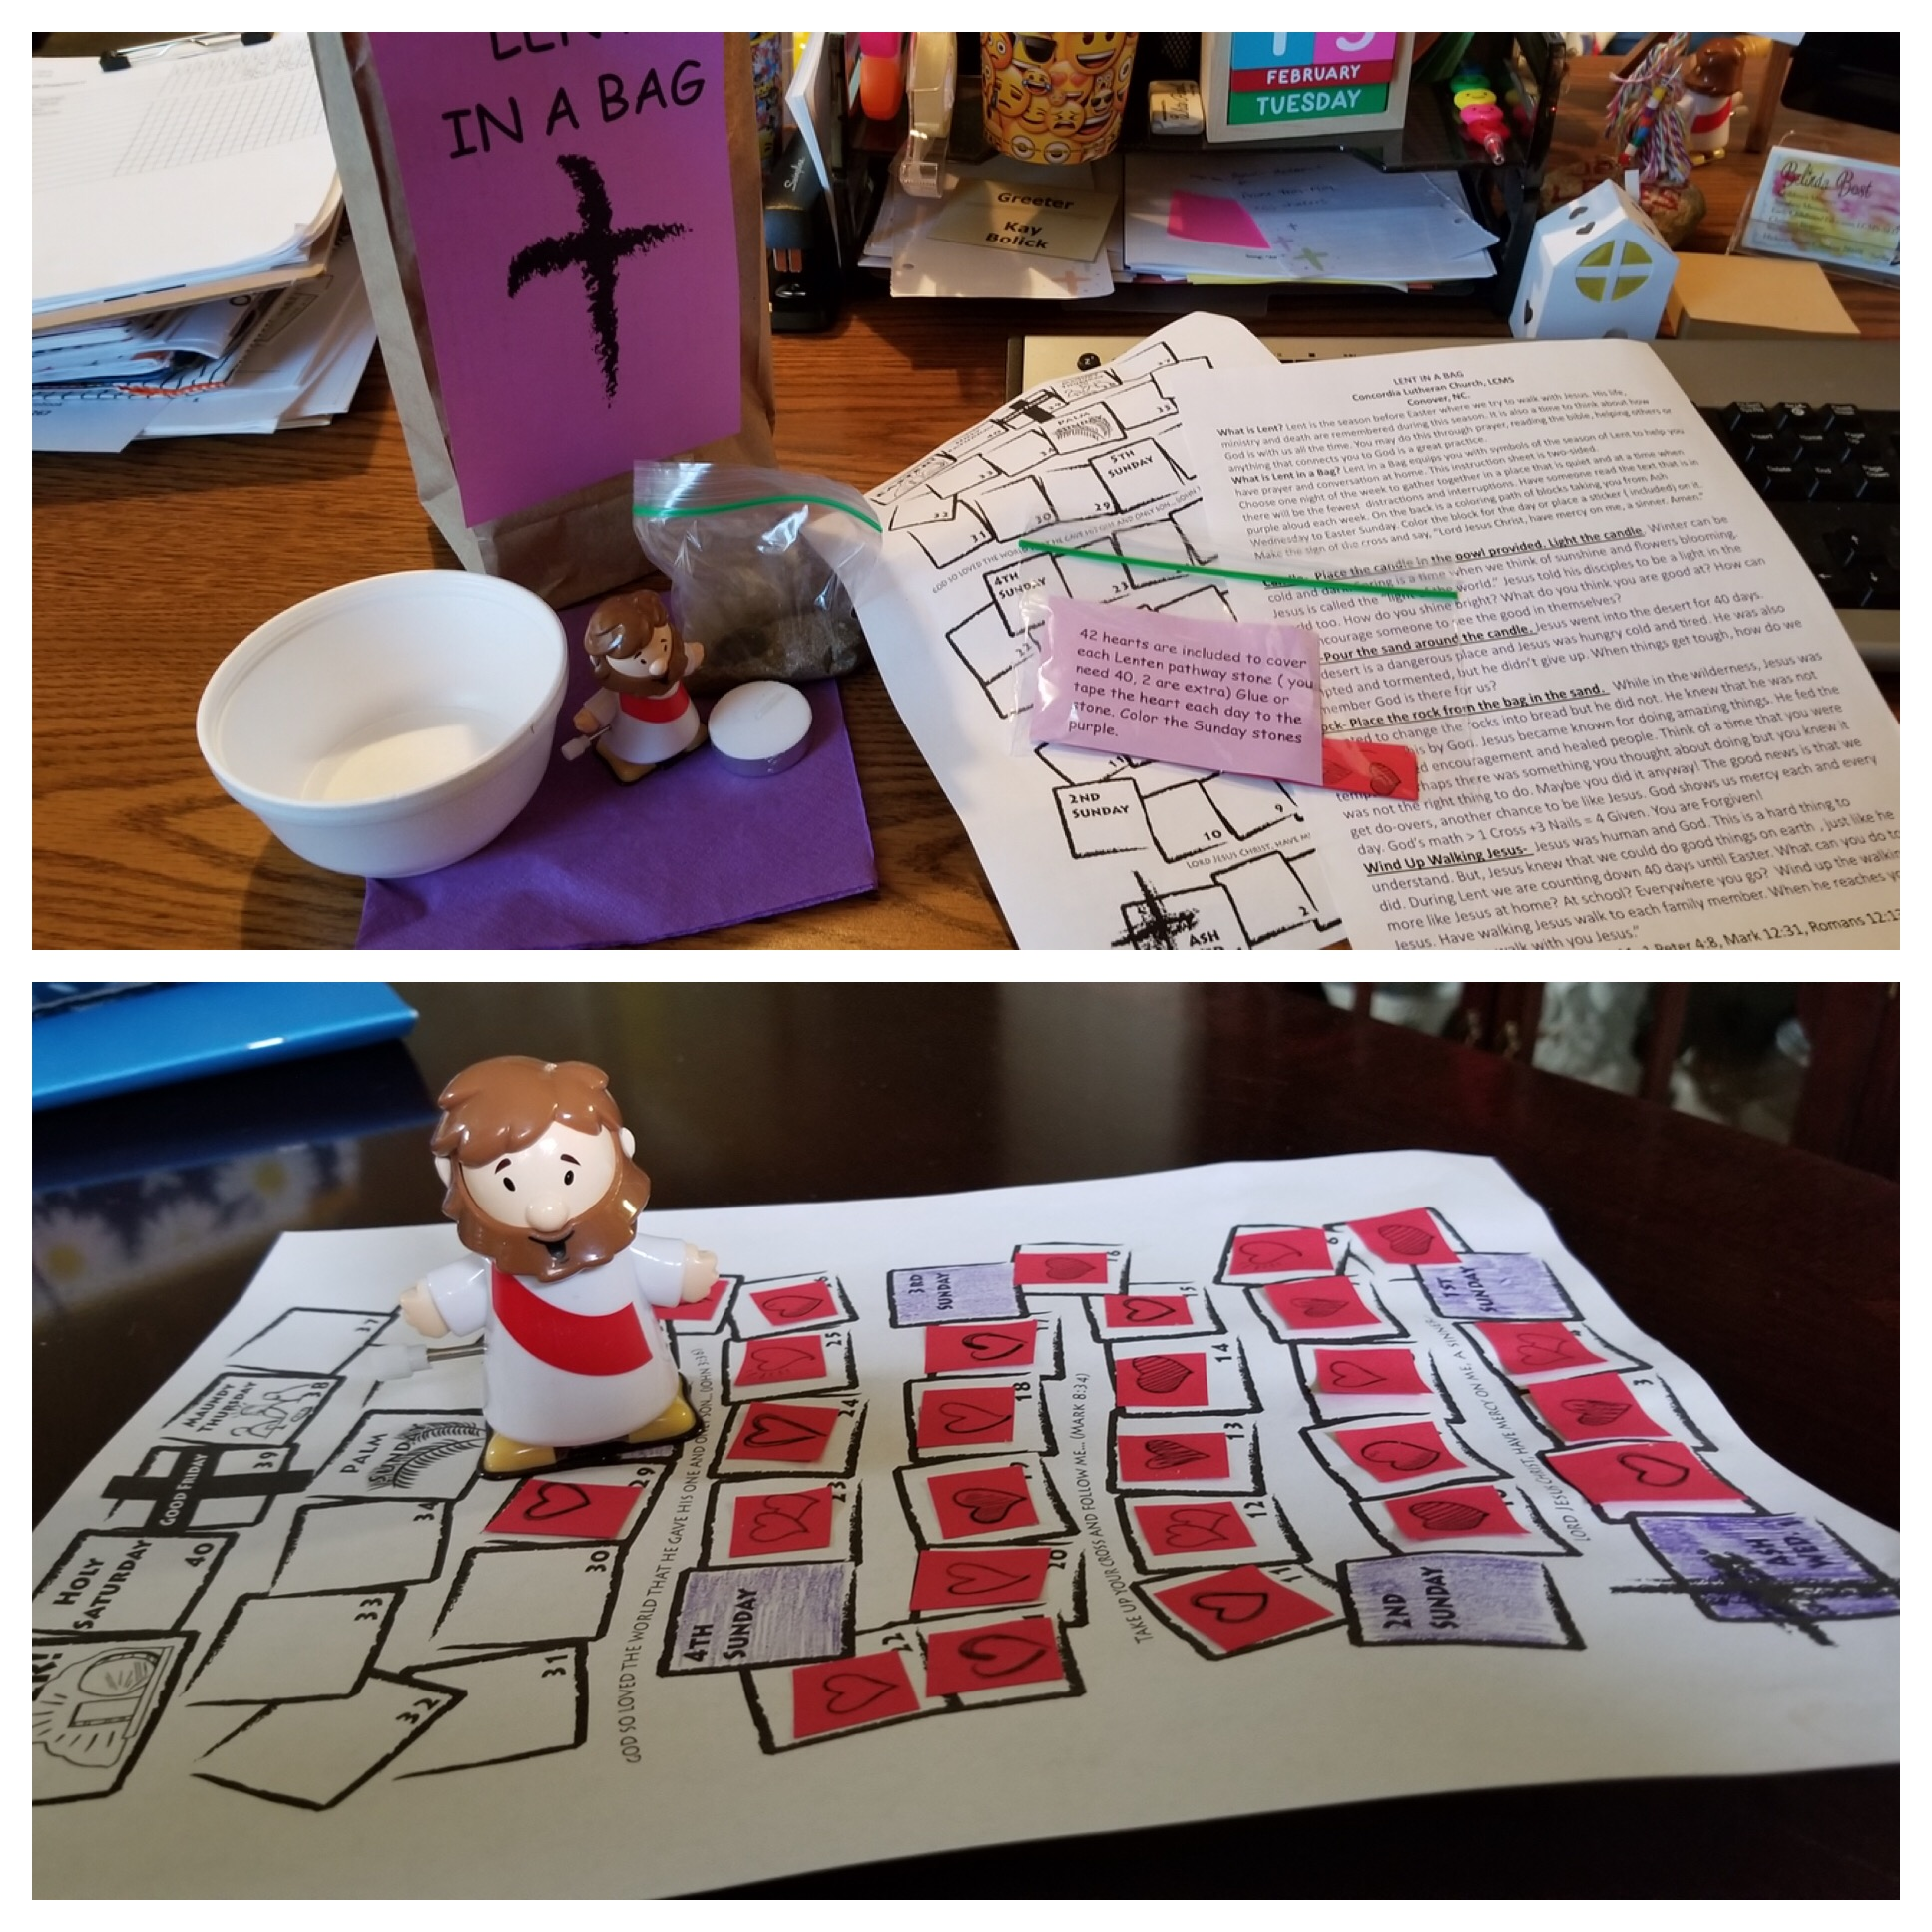 This shows part of the journey of Children's minister and Visual Faith Coach Belinda Bost who shared the Lenten practice that was distributed in her church community in Conover, North Carolina. What a great way to add a dimension that is doable by a family system together.